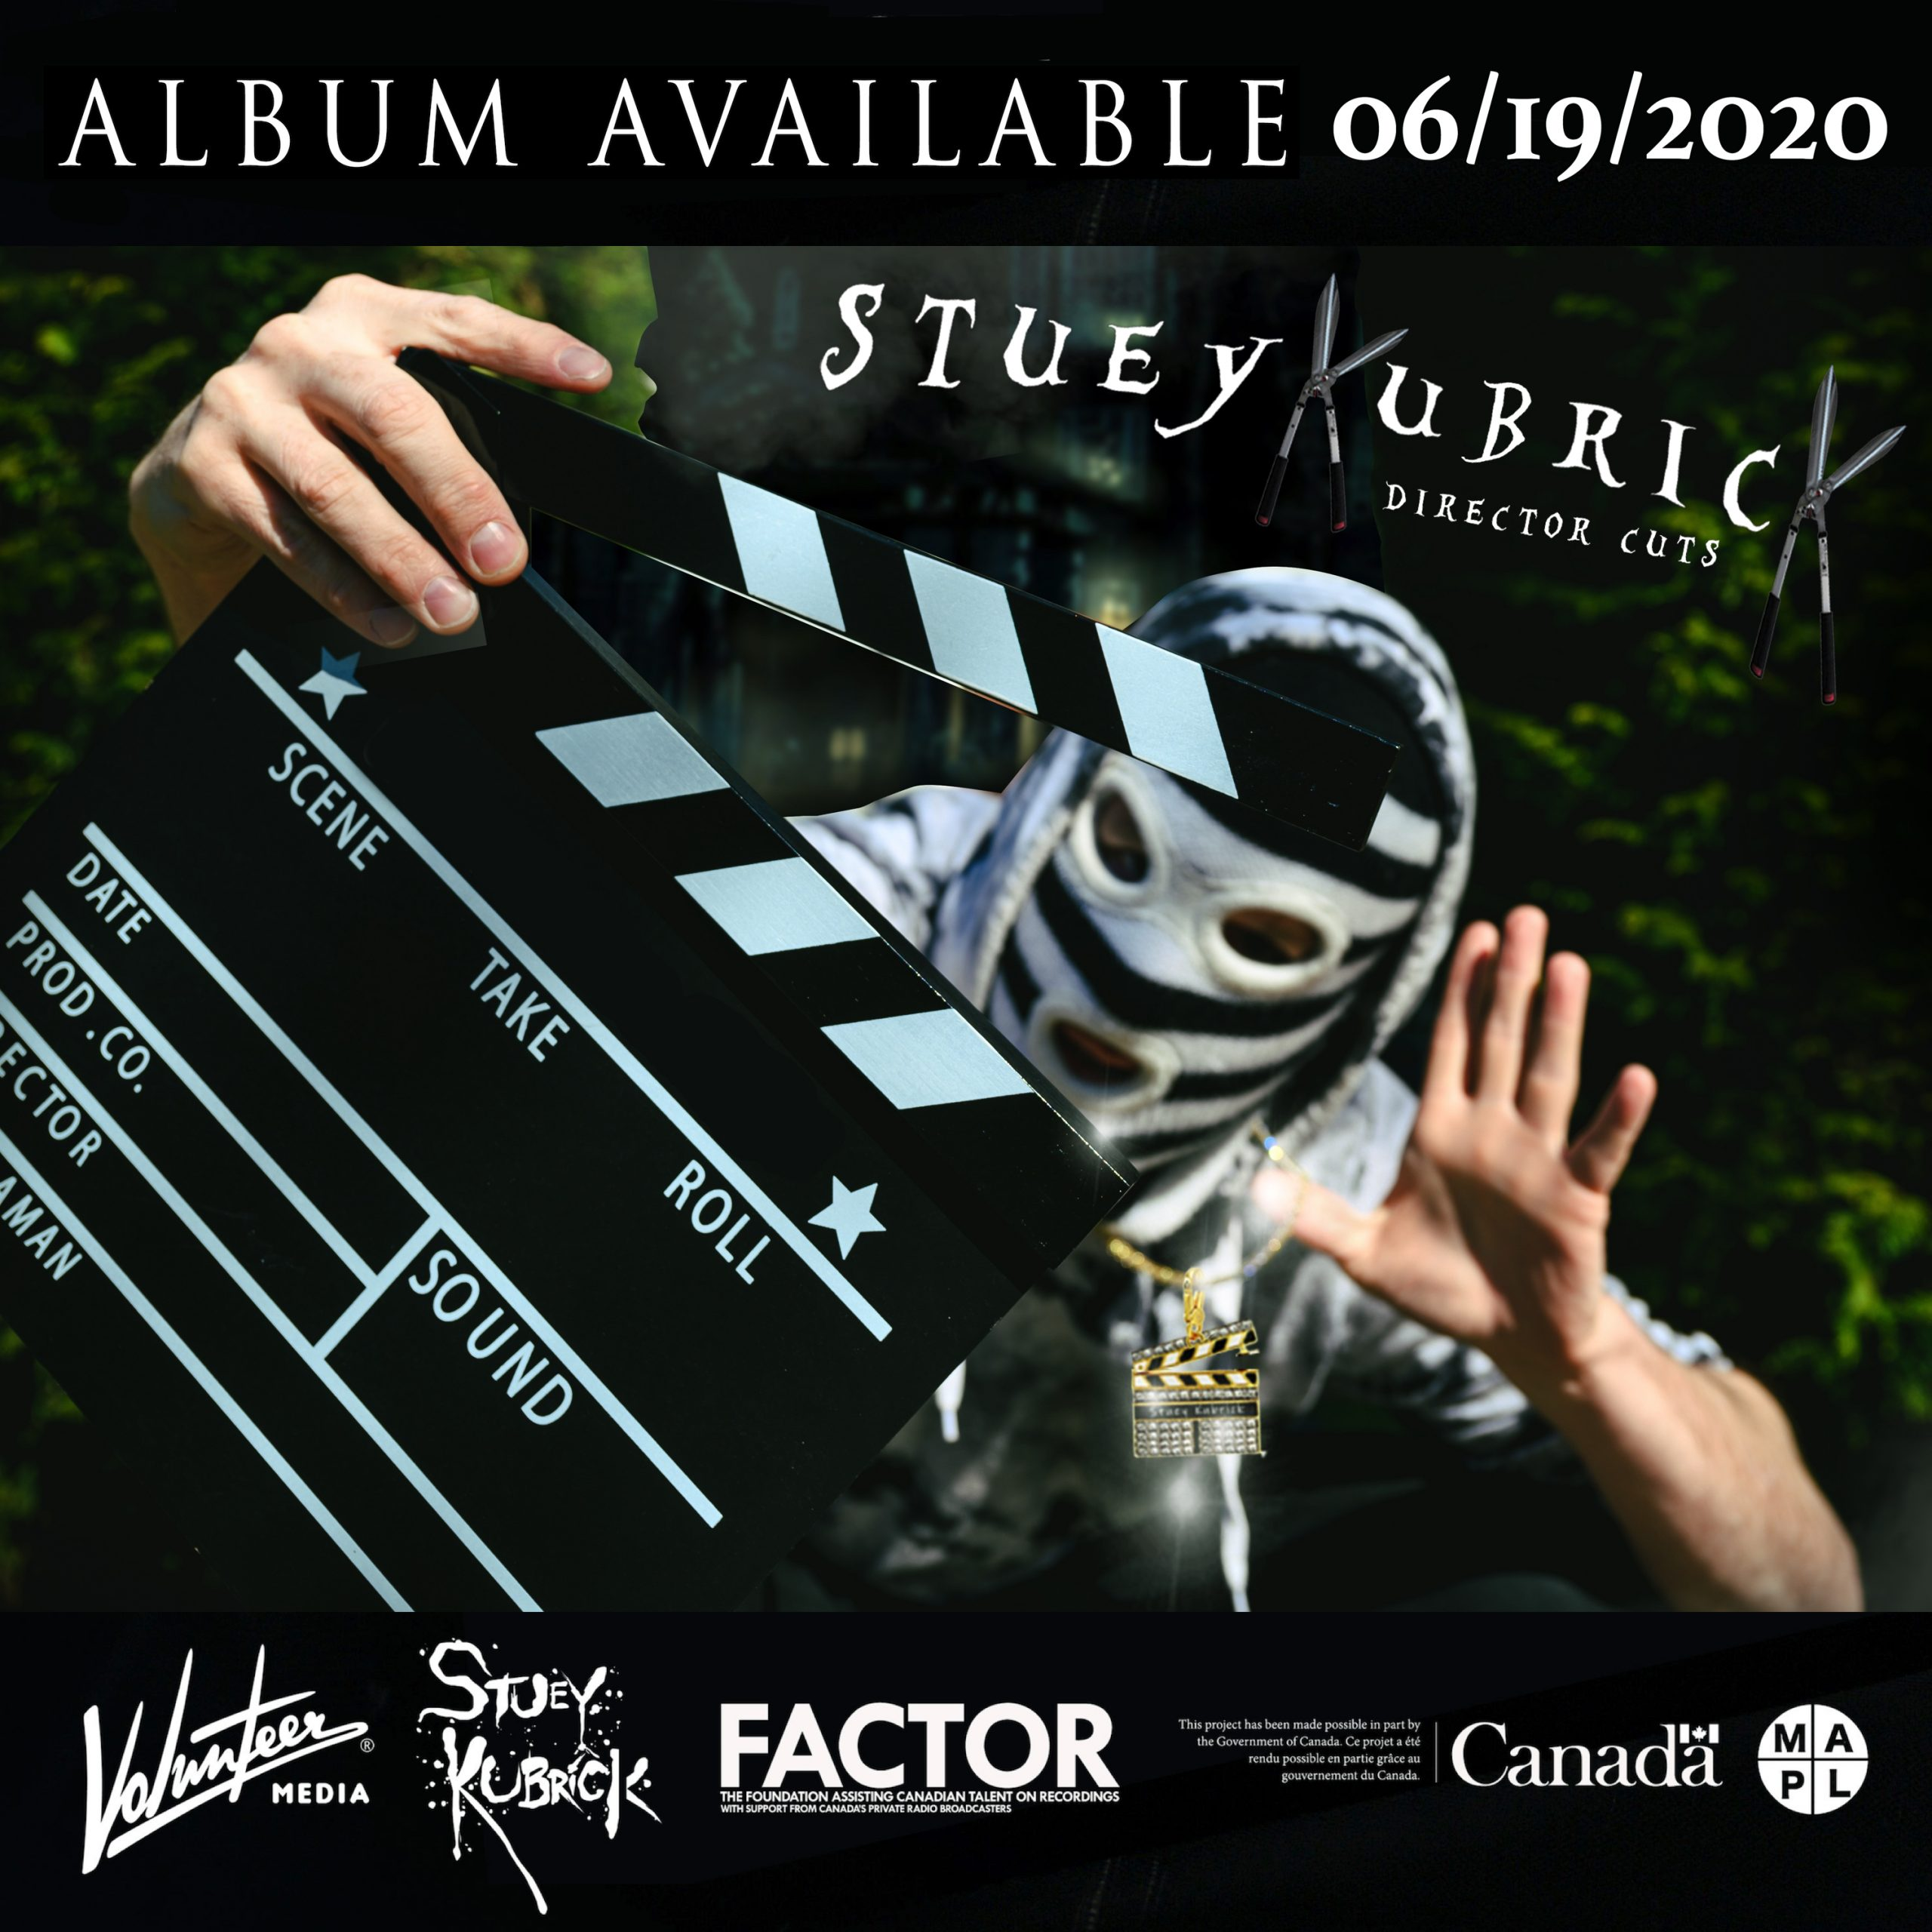 Stuey Kubrick Director Cuts Album Available June 19 2020